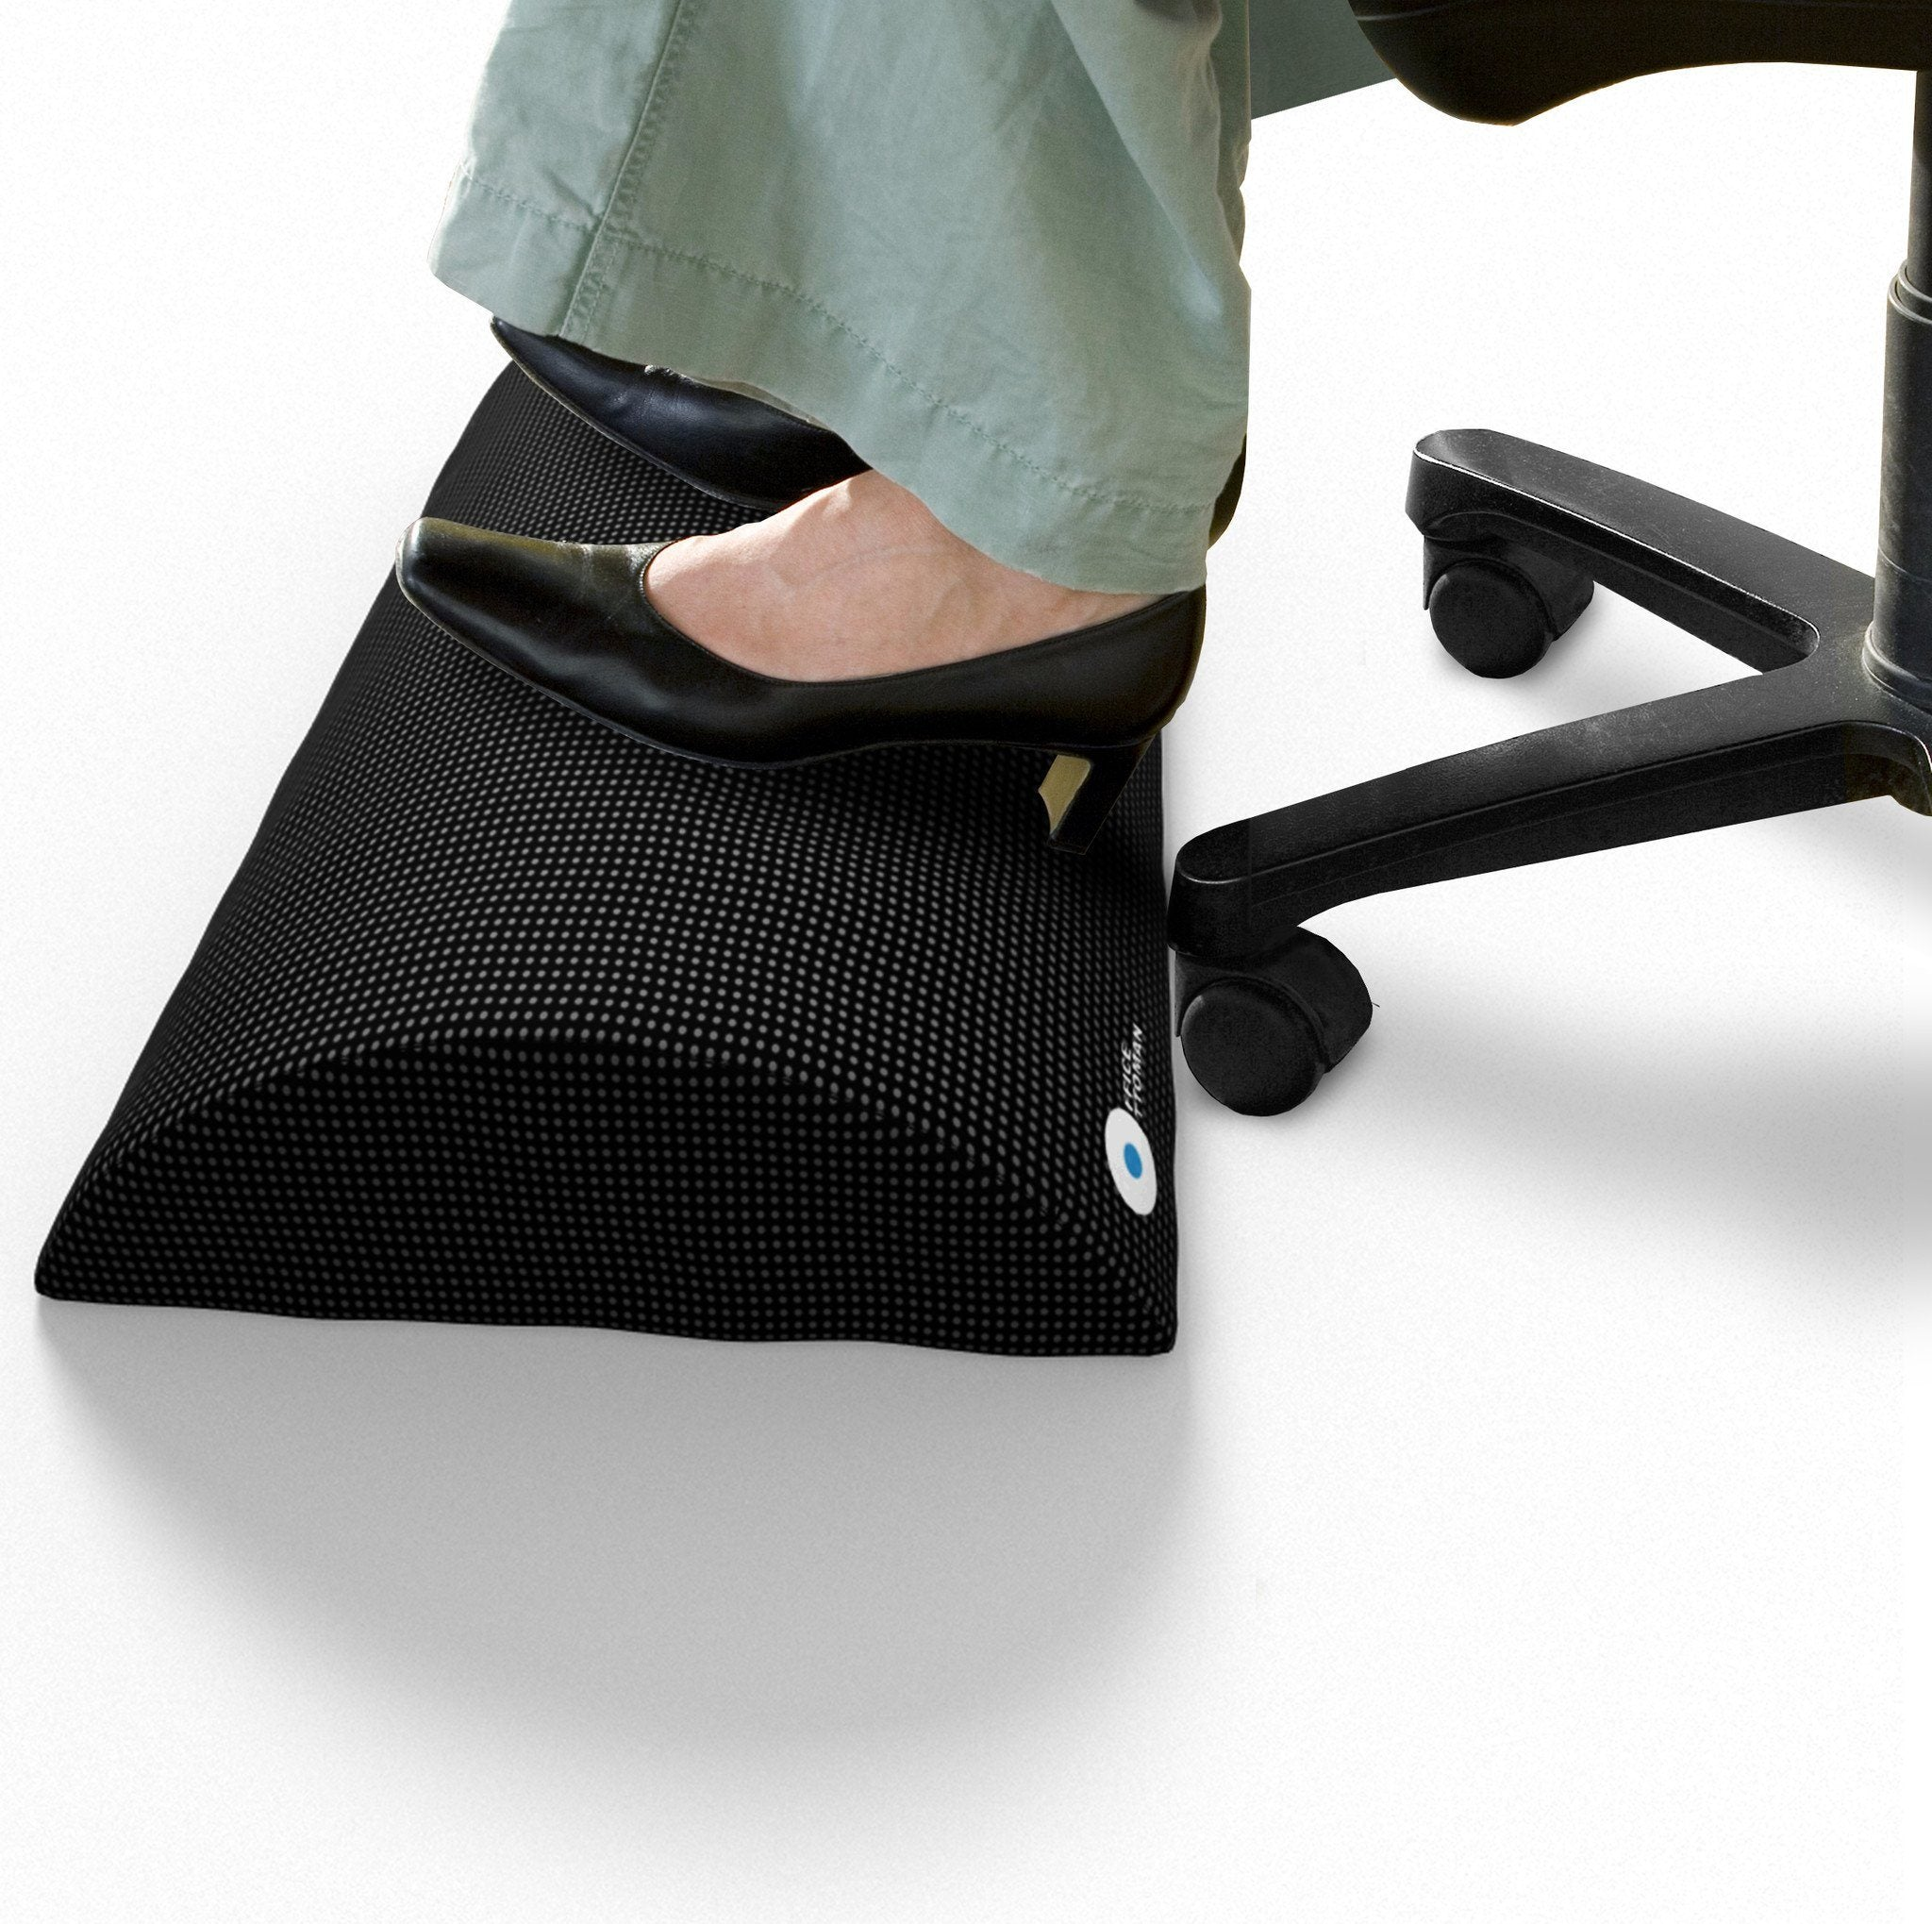 foot rest under desk non slip foam cushion easy posture brands